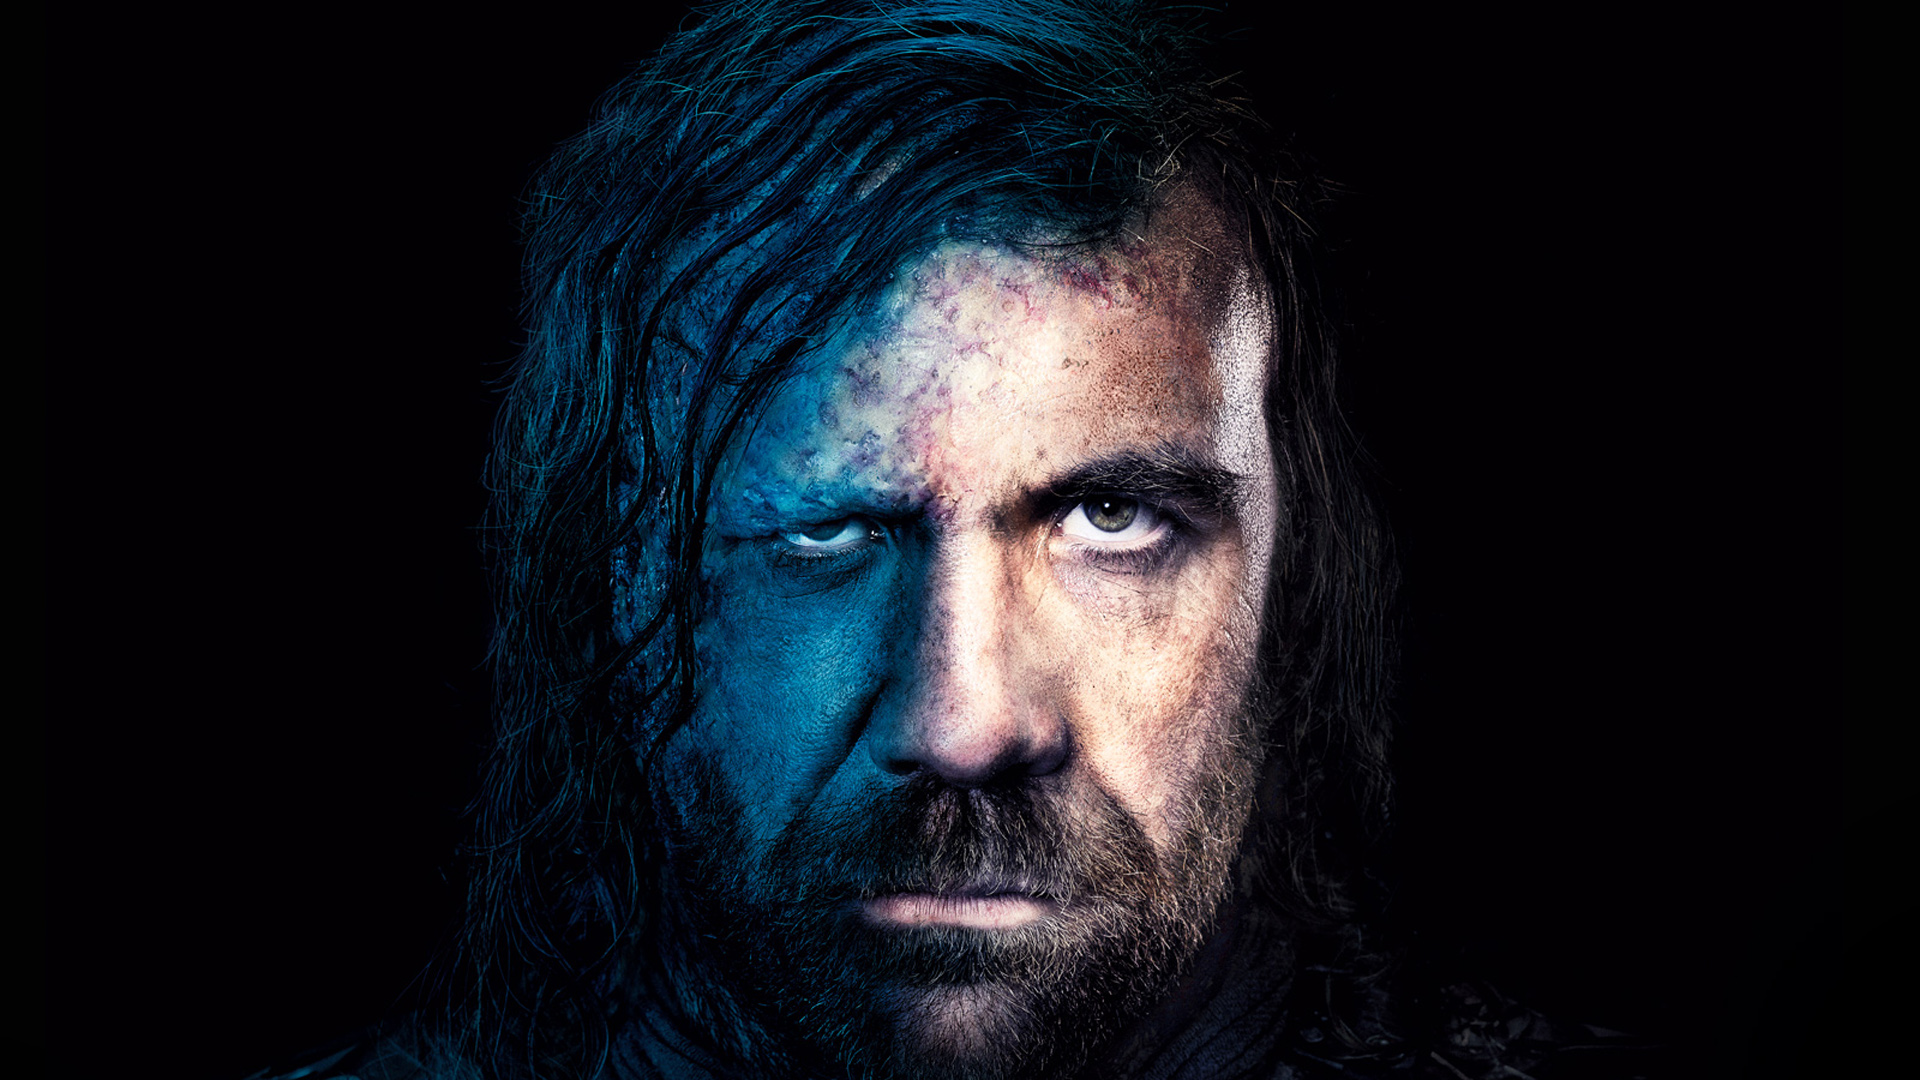 Download Game of Thrones Sandor Clegane Character HD Wallpaper Wide 1920x1080